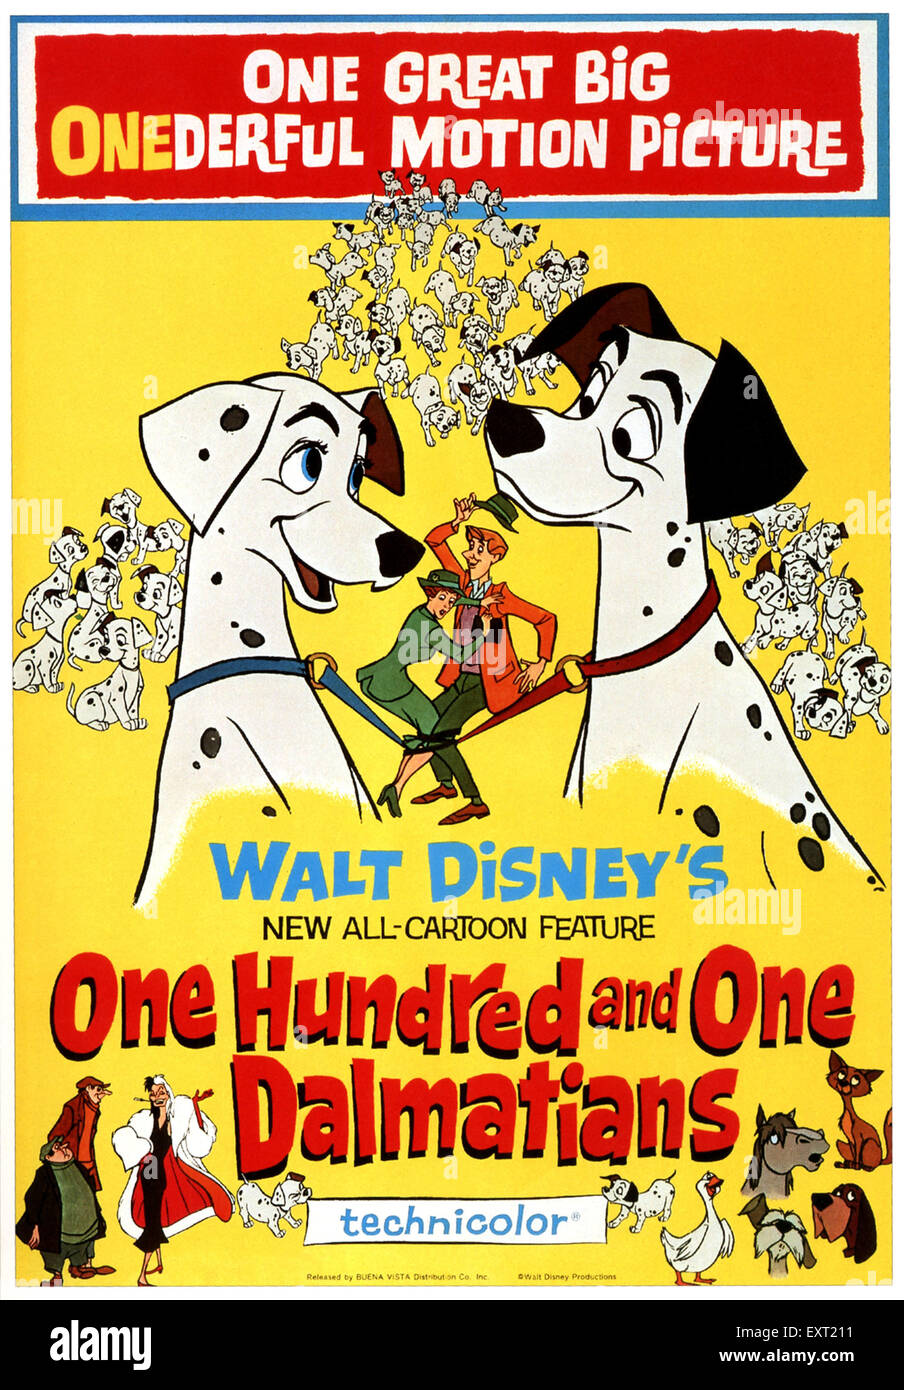 1960s USA Walt Disney's One Hundred and One Dalmations Film Poster - Stock Image